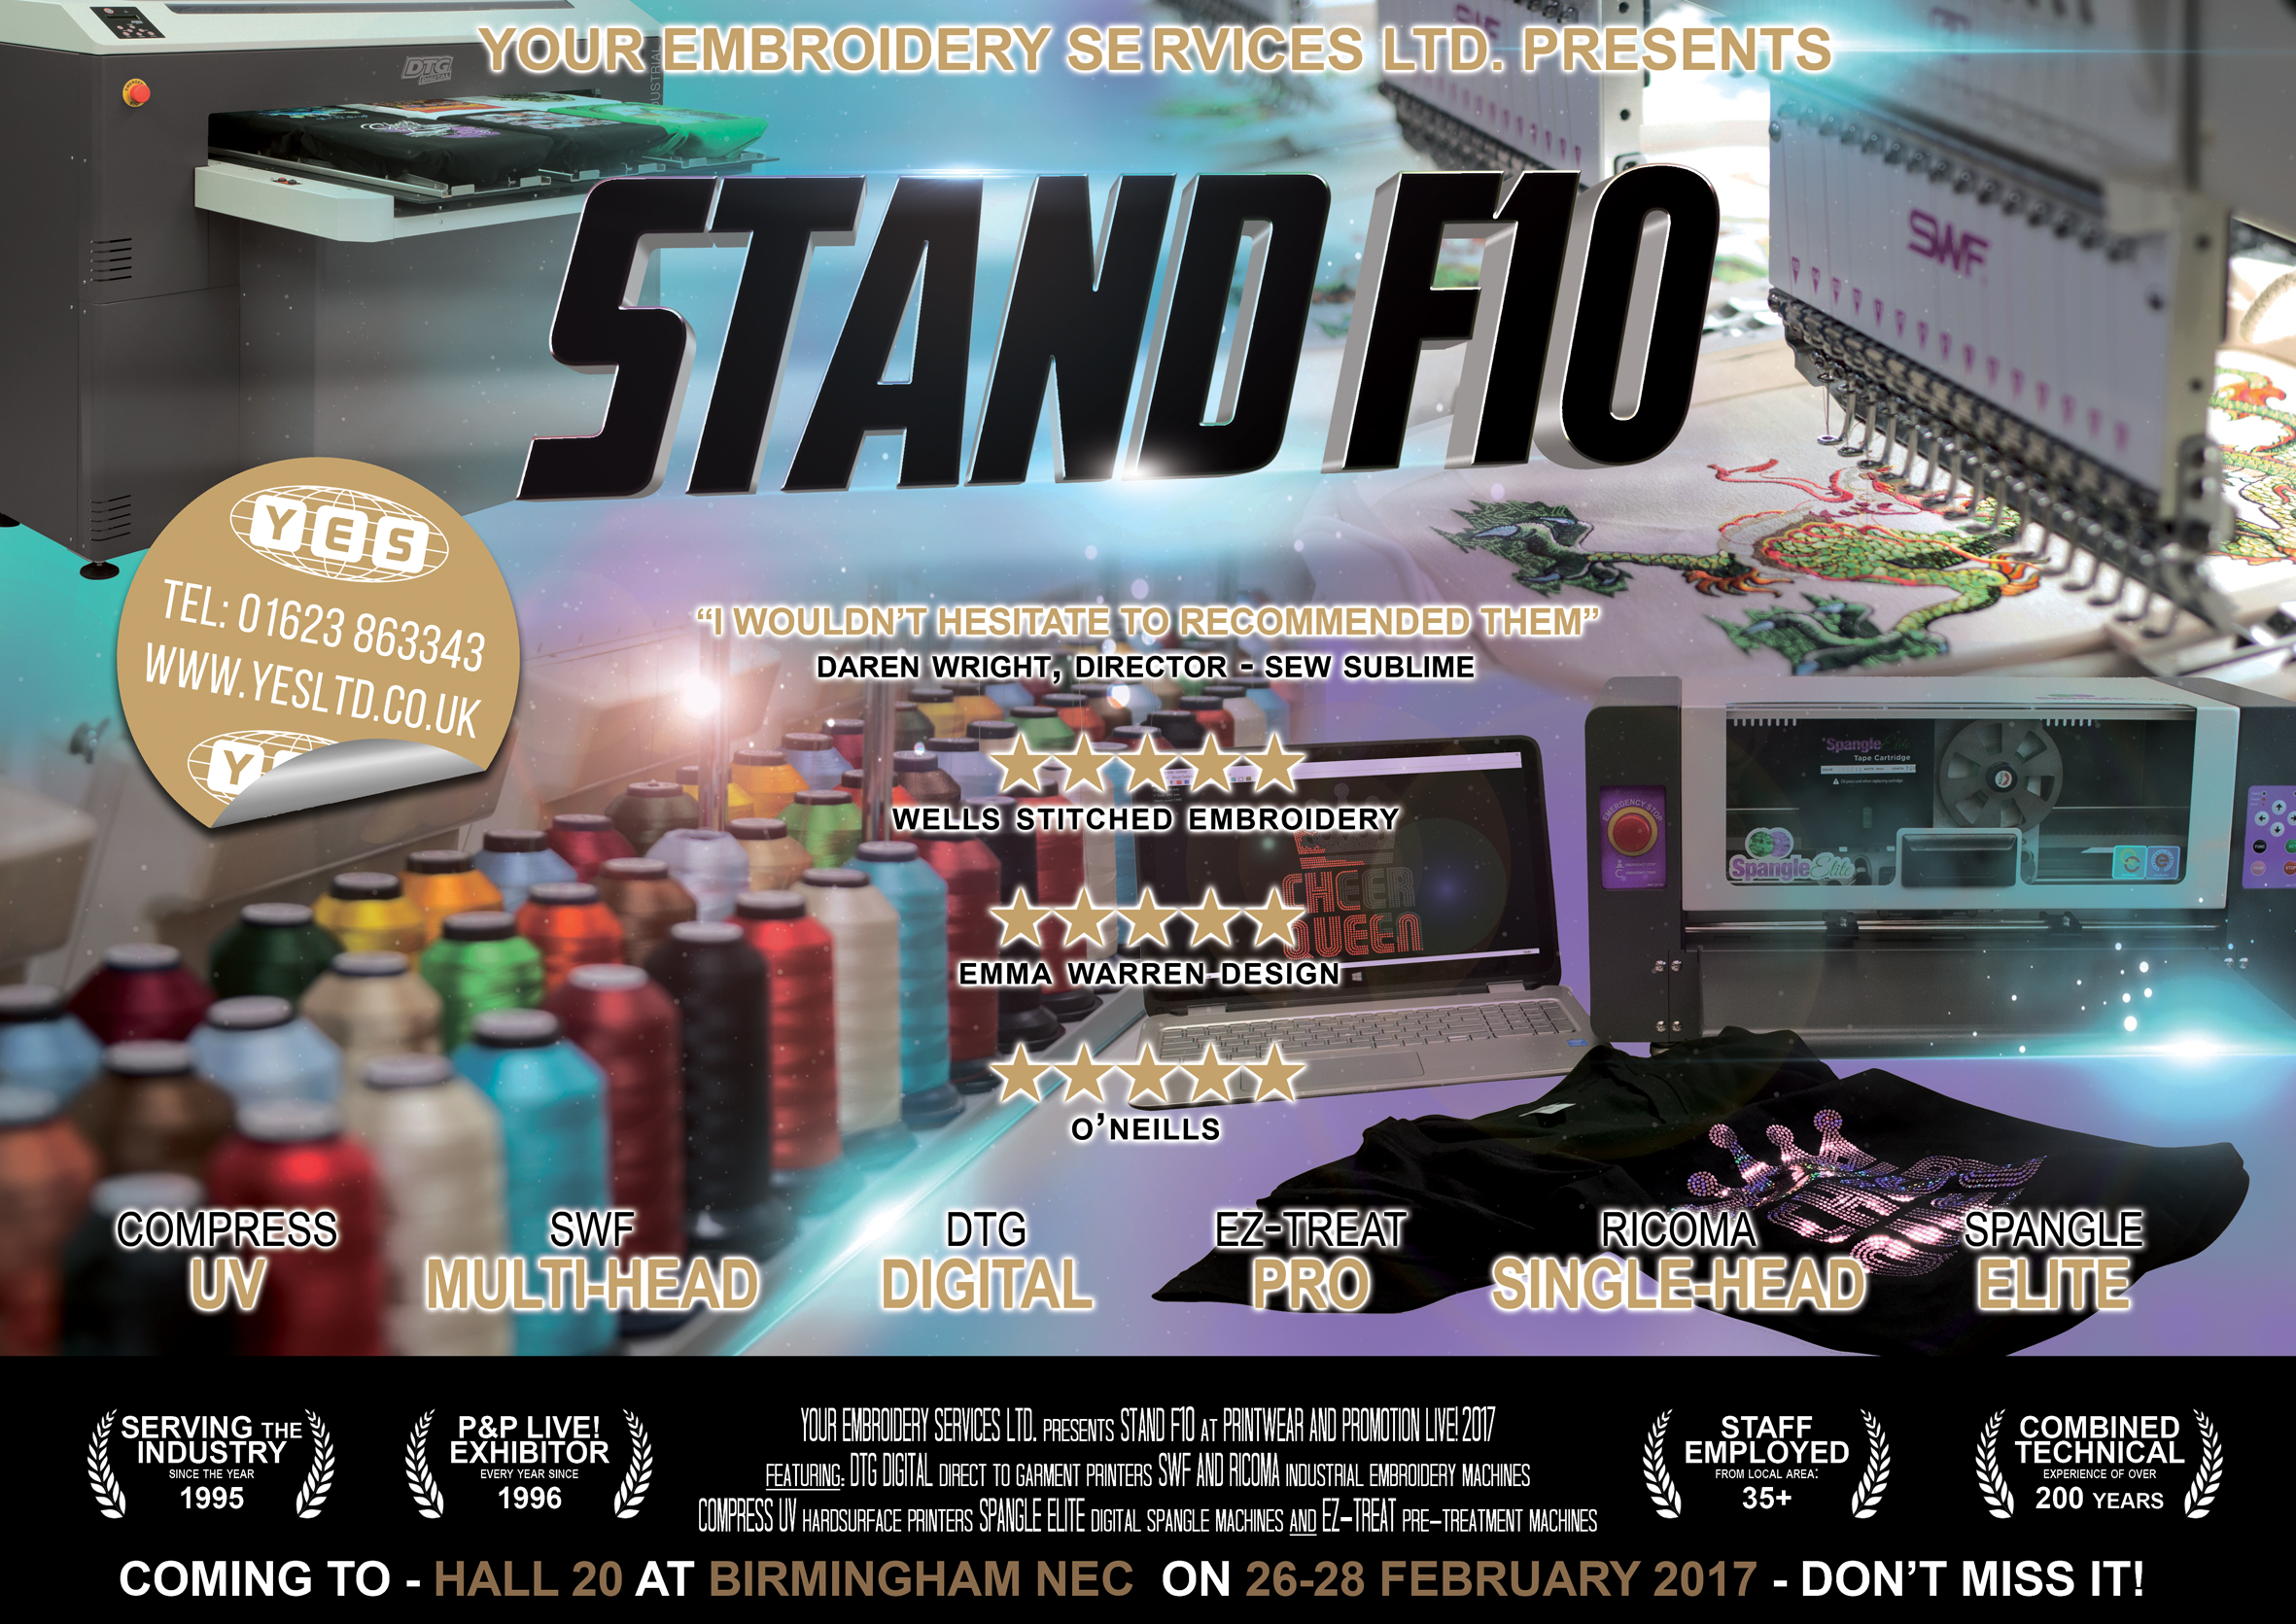 Stand F10 Promo Poster